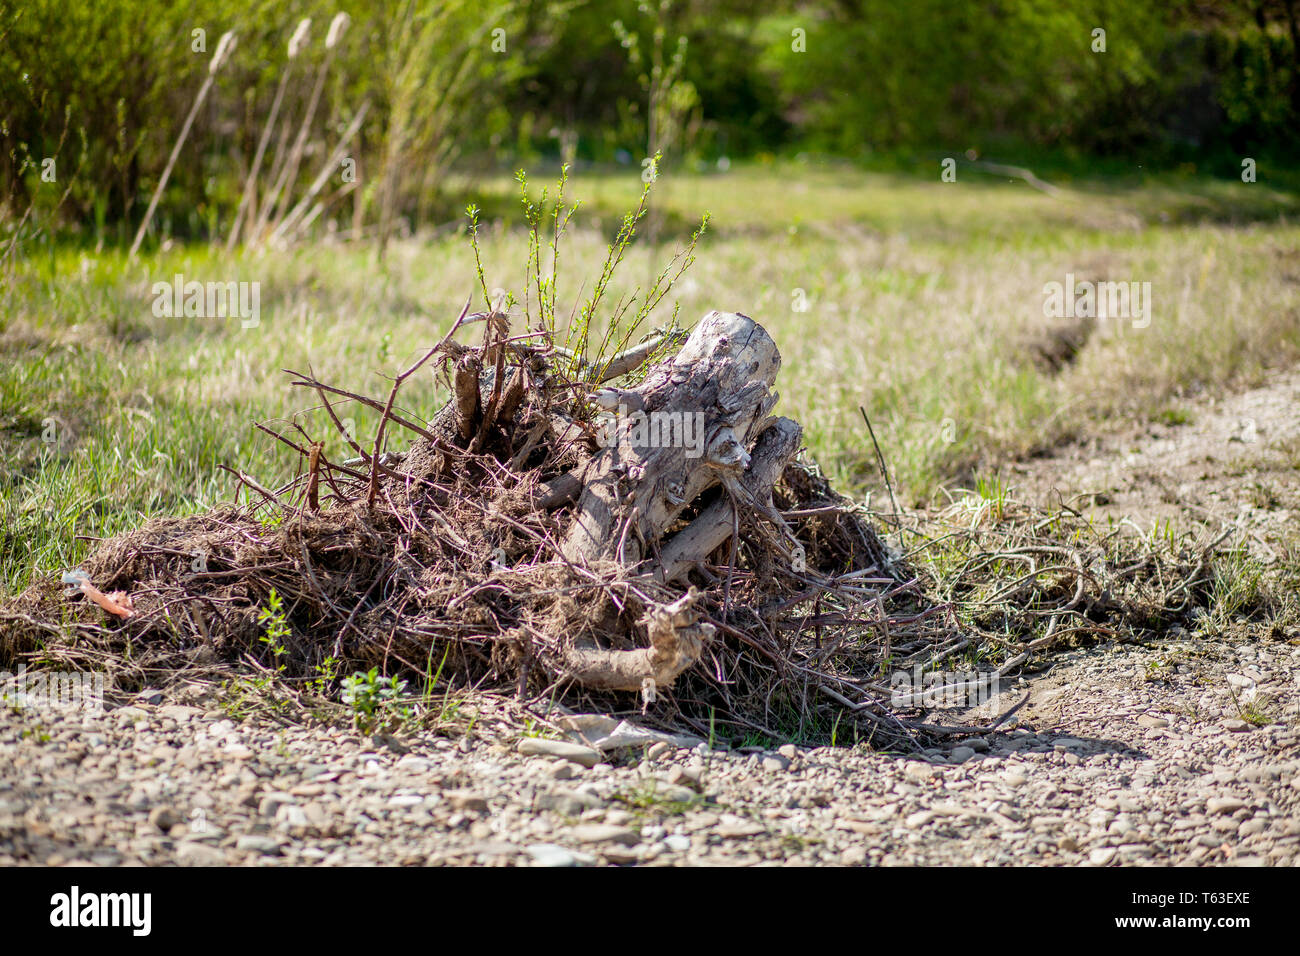 The death of olive trees due to constructing a road trees are getting brutally killed, chopped down and torned apart trashing the roots, branches and  - Stock Image